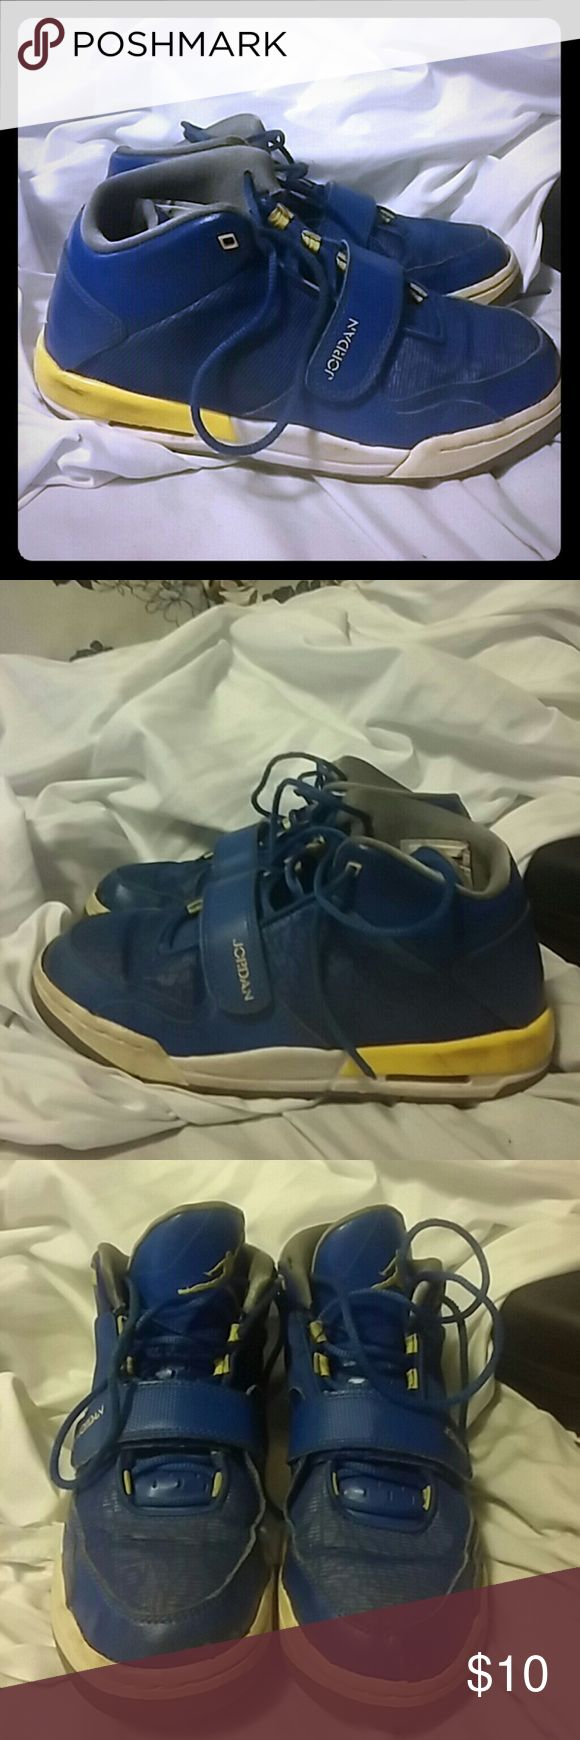 Nike Youth Jordan Flight Club Basketball Shoes 6Y 602662-489 SZ 6Y. Some marks on shoes, need cleaning Nike Shoes Sneakers